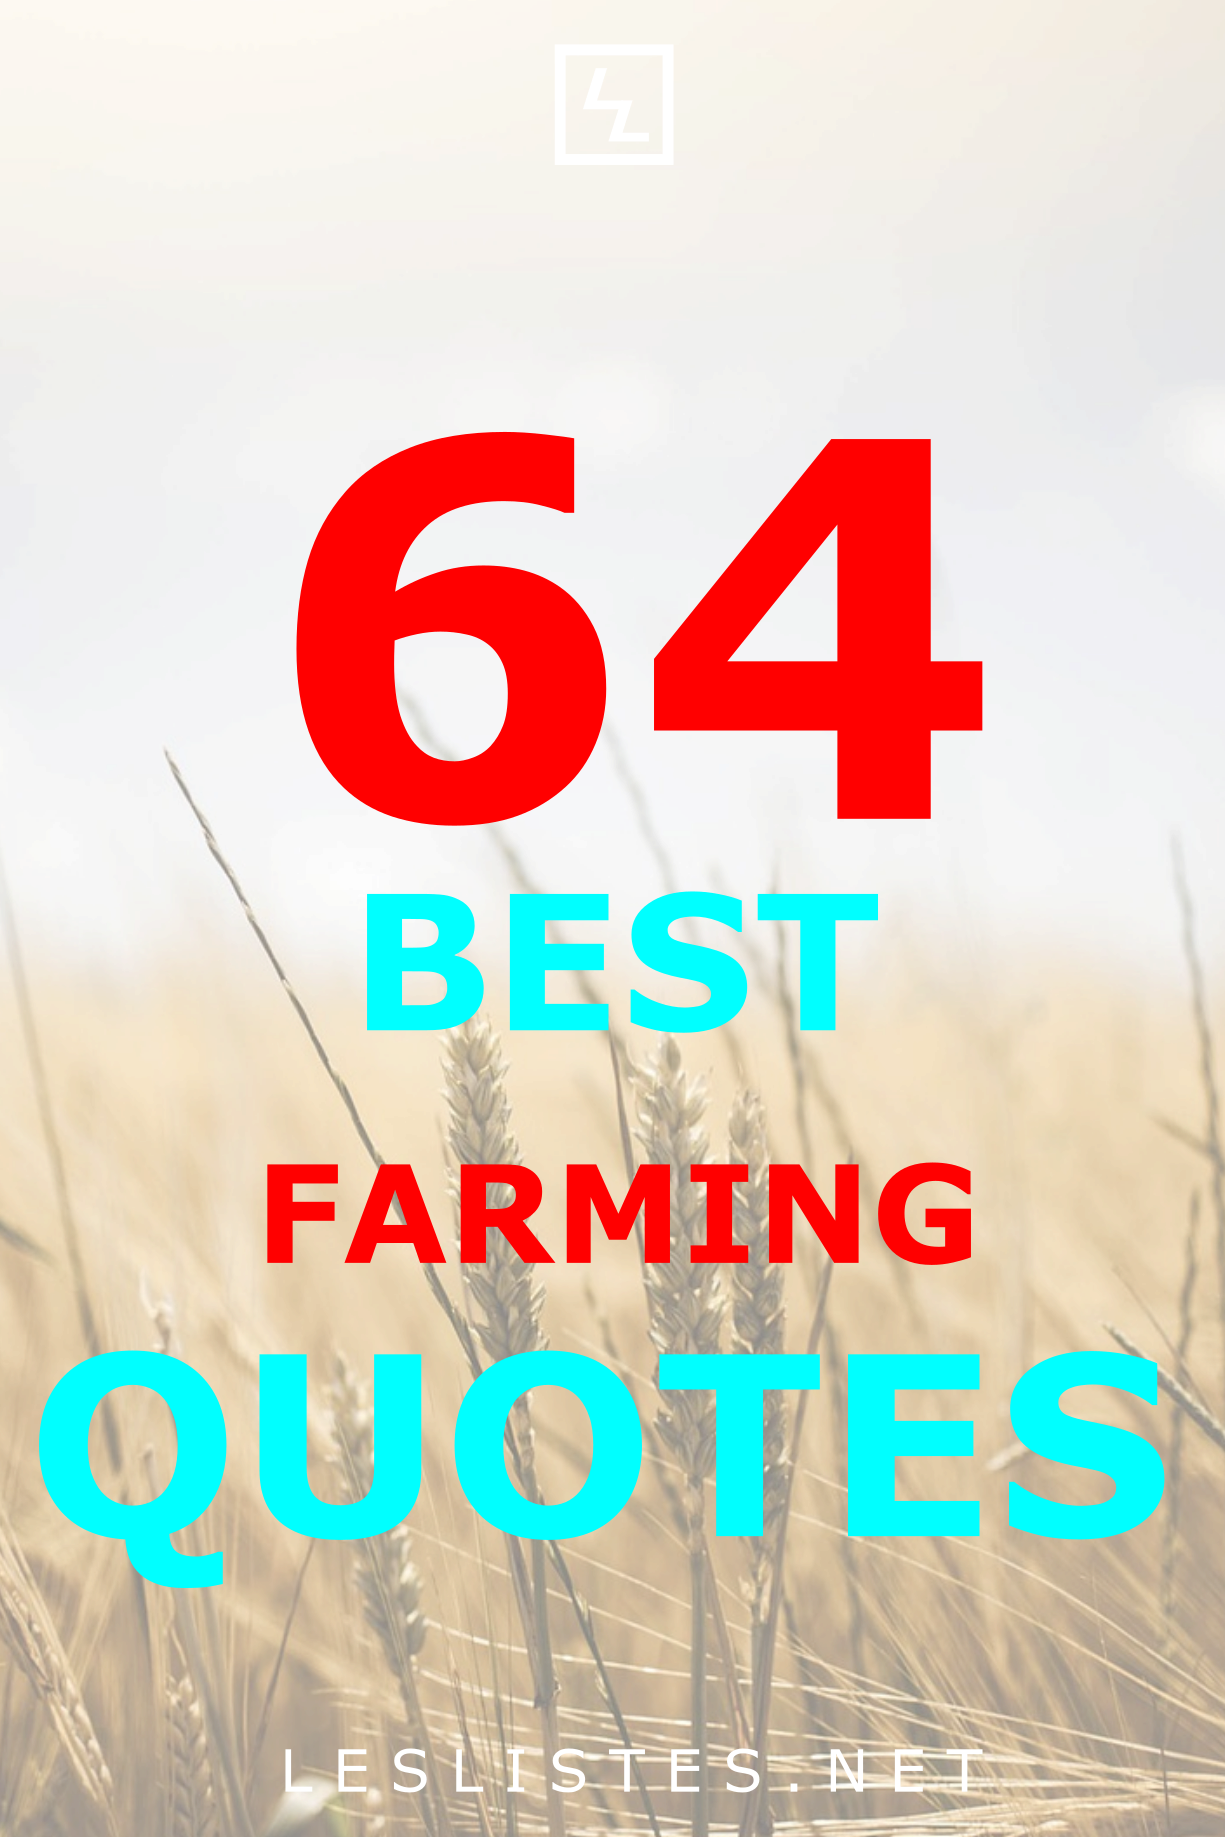 Top 64 Farming Quotes That You Should Know